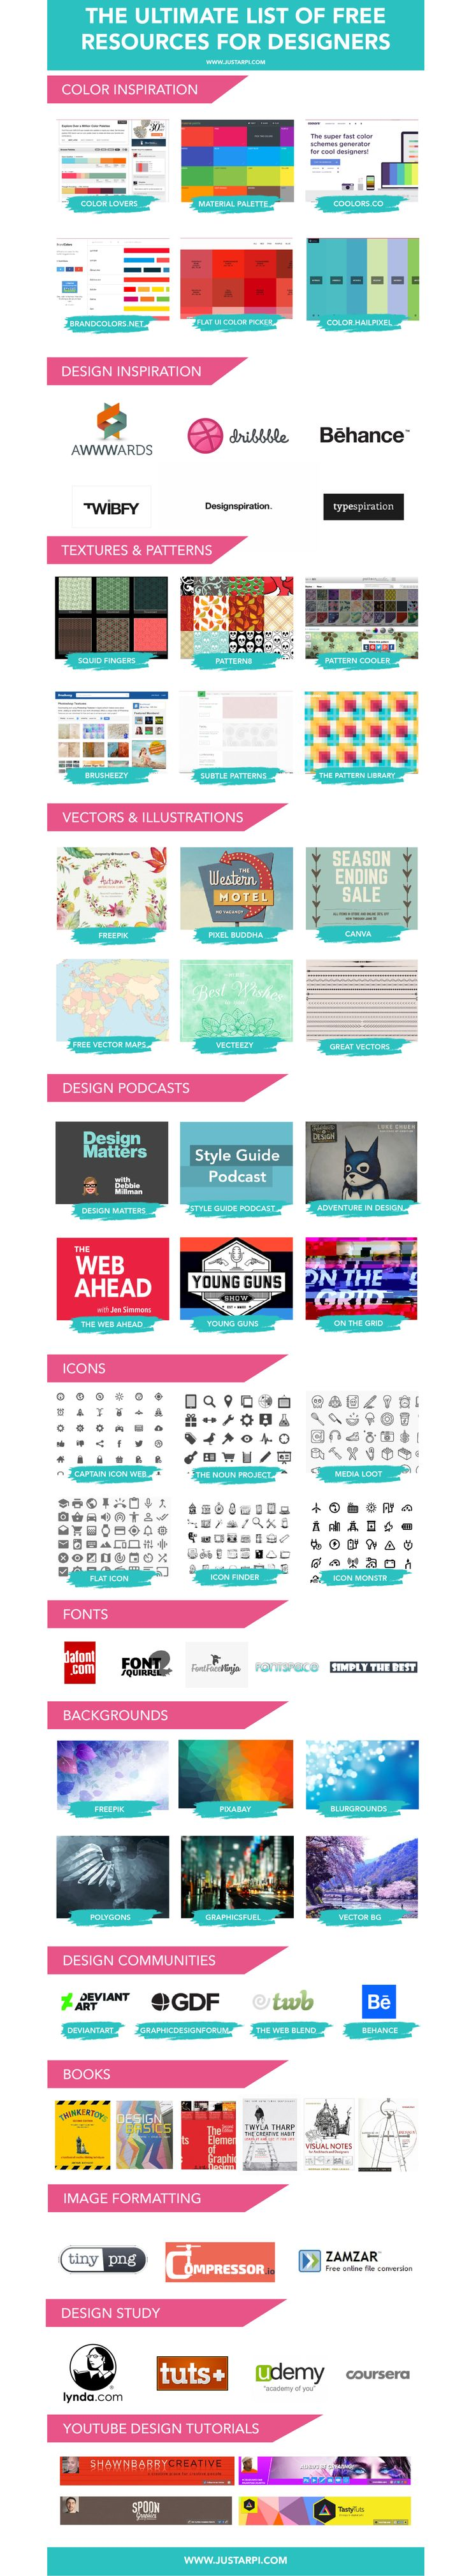 Ultimate FREE Design Resources for Designers and Creatives